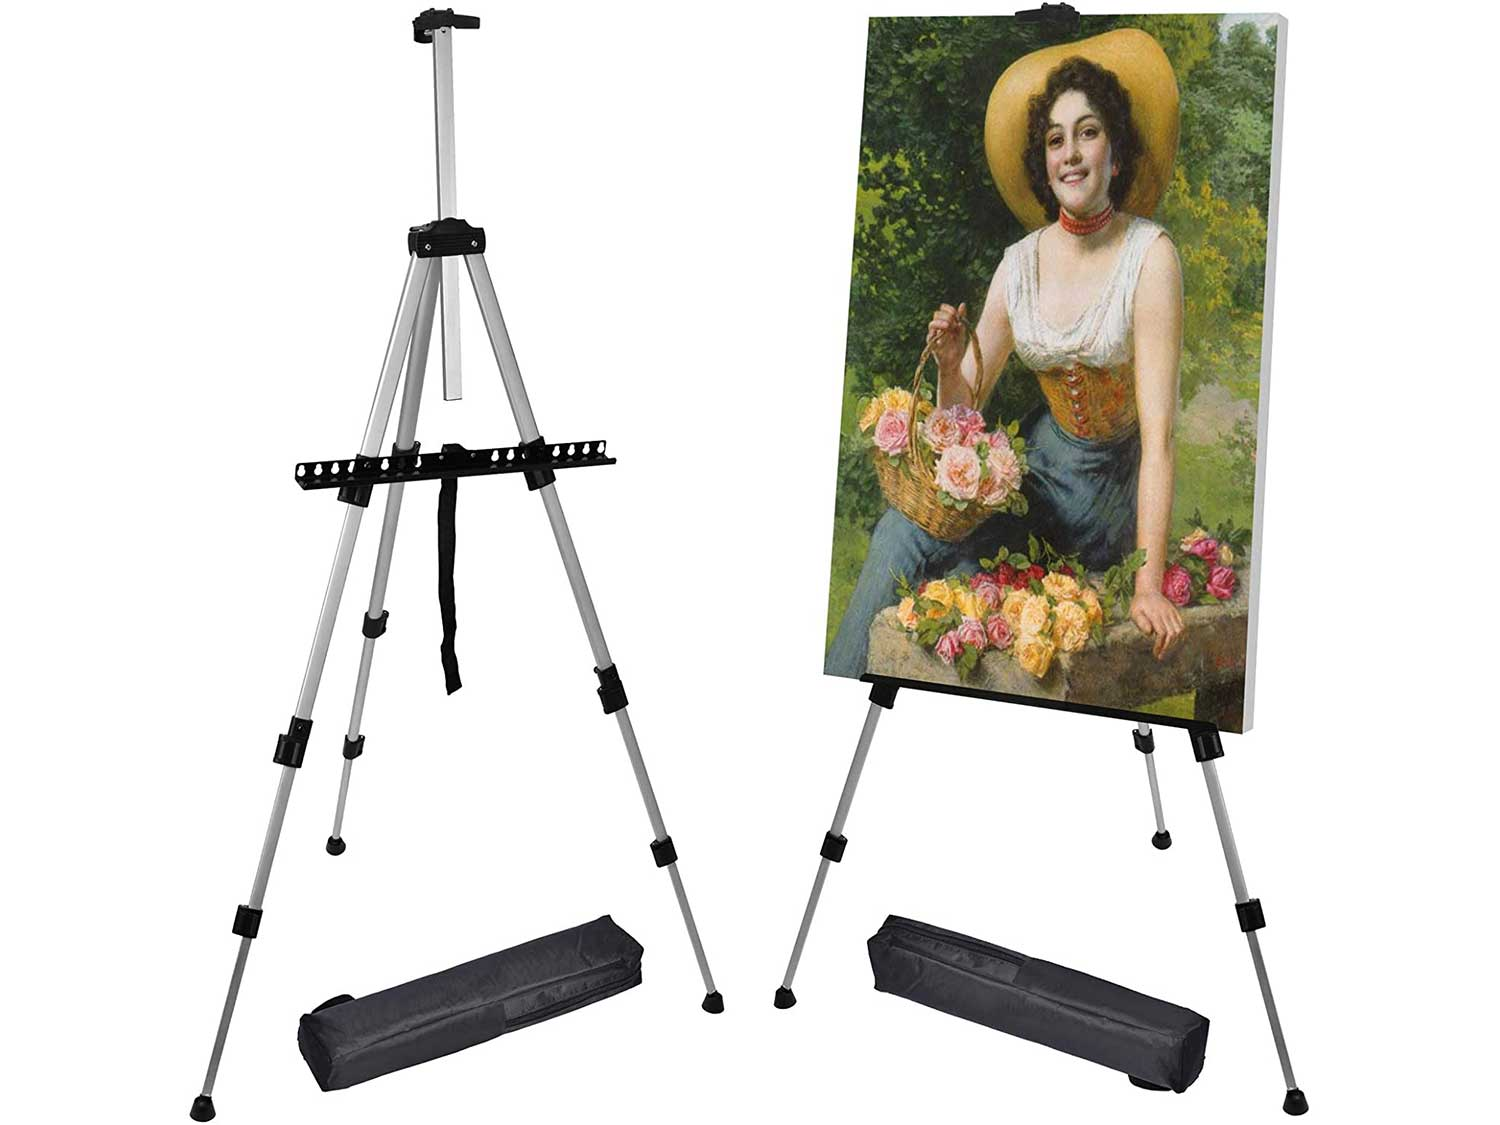 T-SIGN 66 Inch Artist Easel Stand